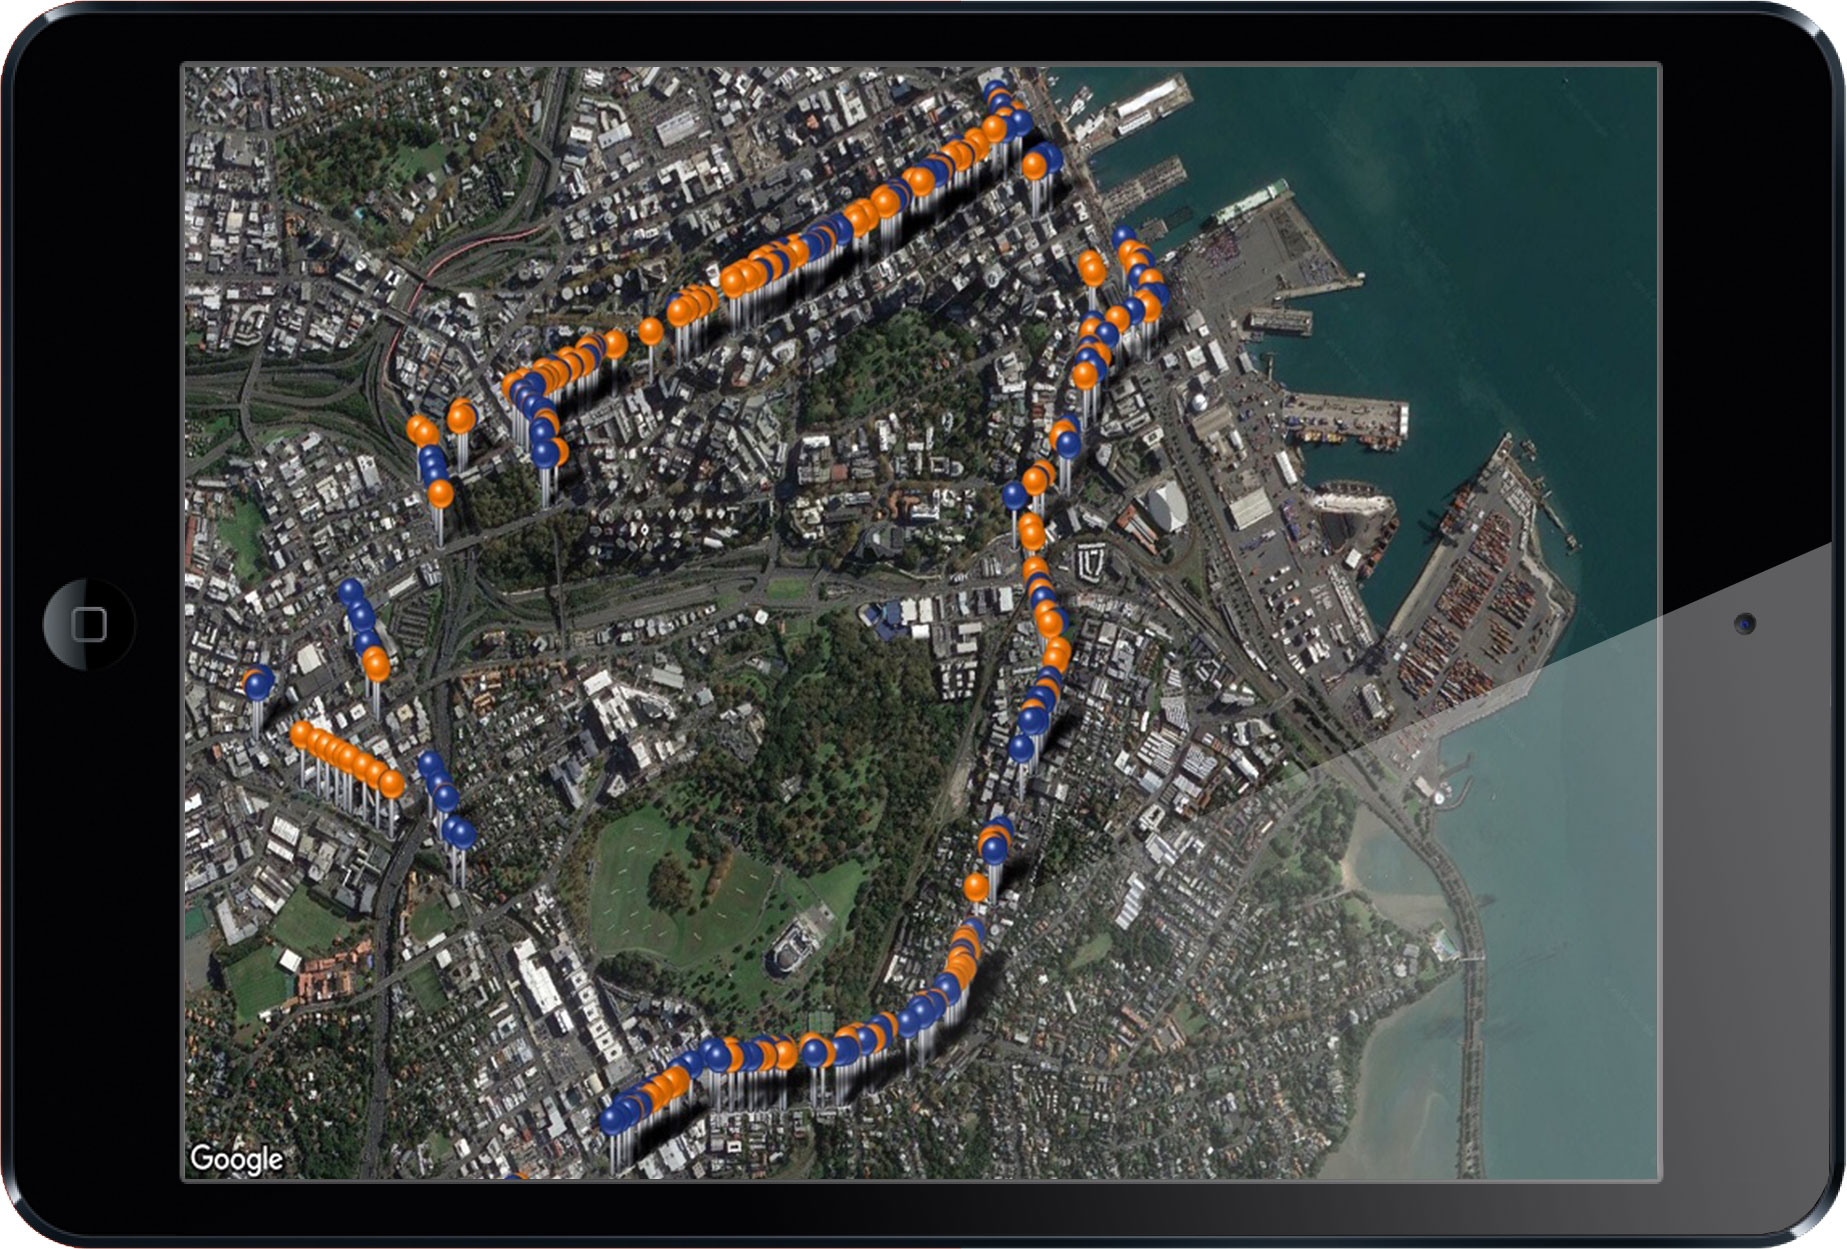 ipadgps-data-collect-1